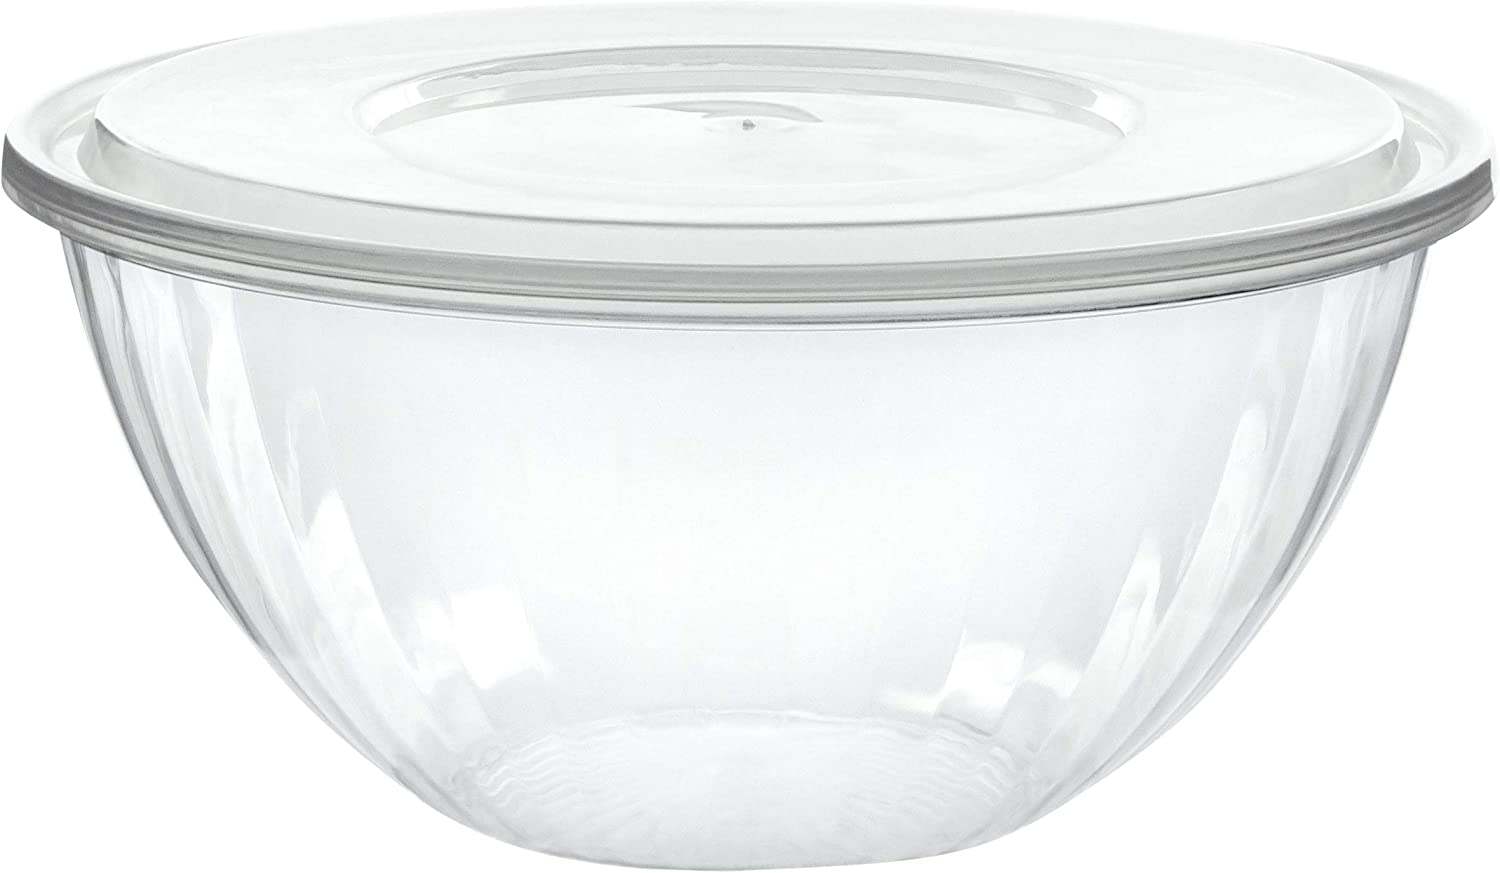 Plasticpro Disposable 96 Ounce Round Crystal Clear Plastic Serving Bowls With Lids Party Snack or Salad Bowl, Chip Bowls, Snack Bowls, Candy Dish, Salad Container Pack of 4